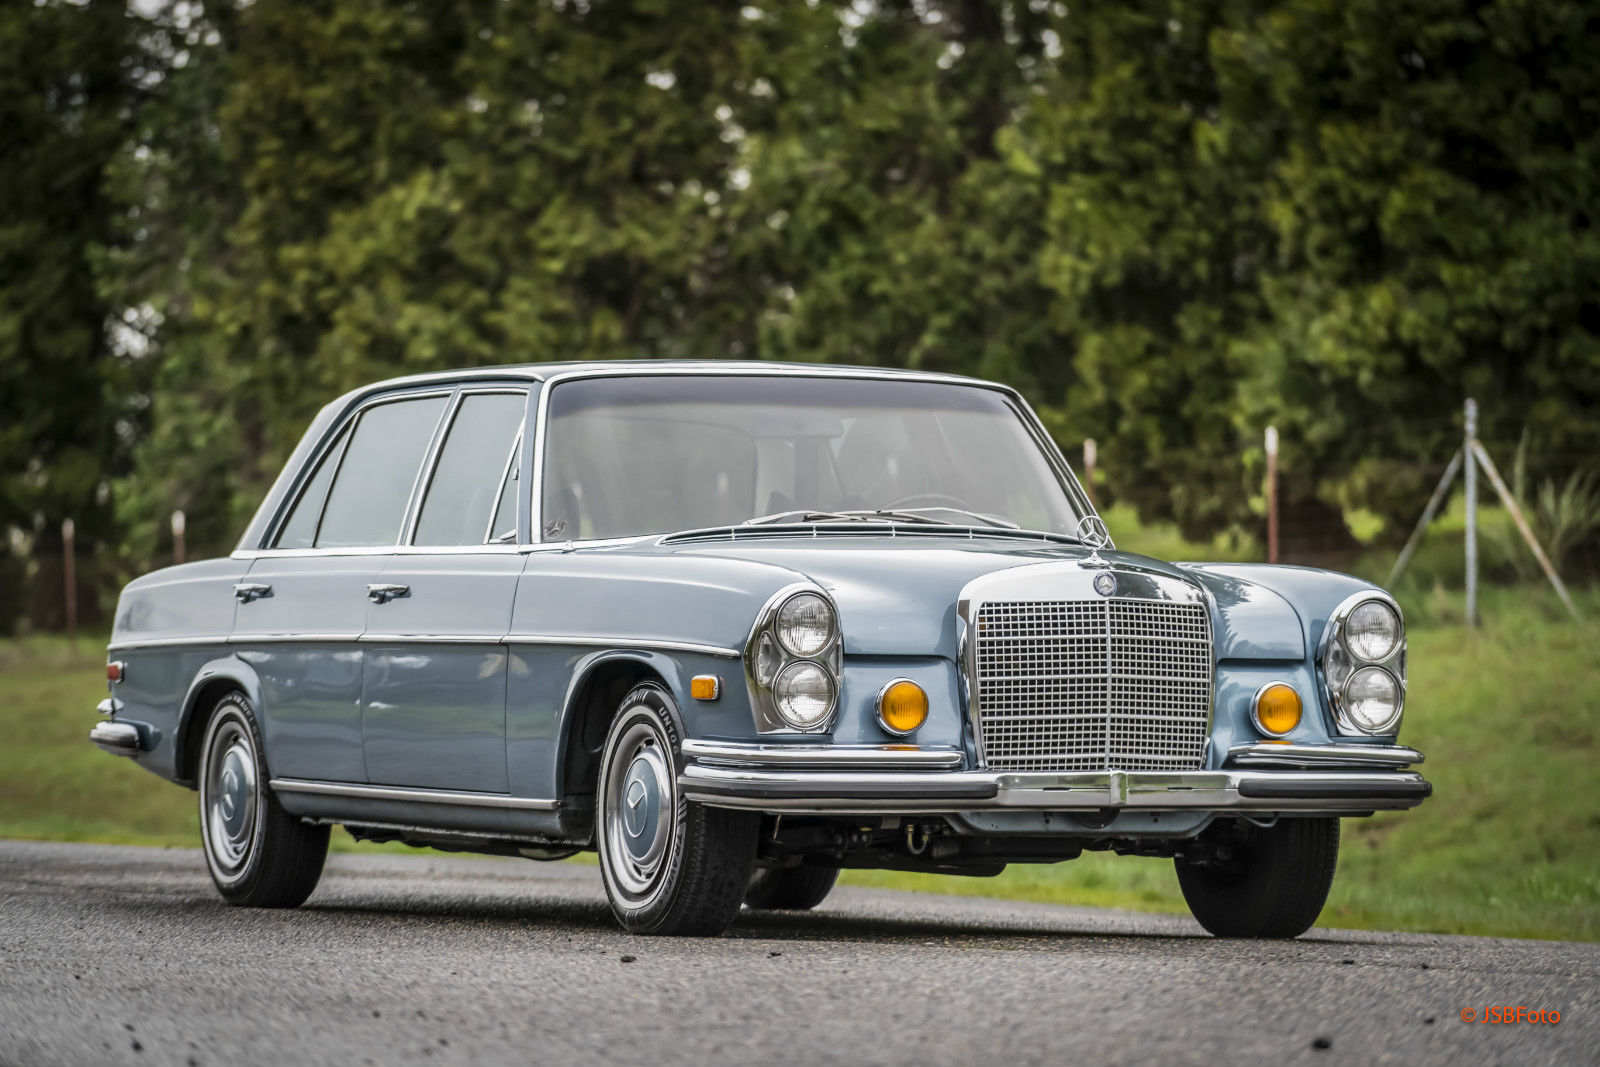 Daily turismo auction watch 1972 mercedes benz 280sel 4 5 for 1972 mercedes benz